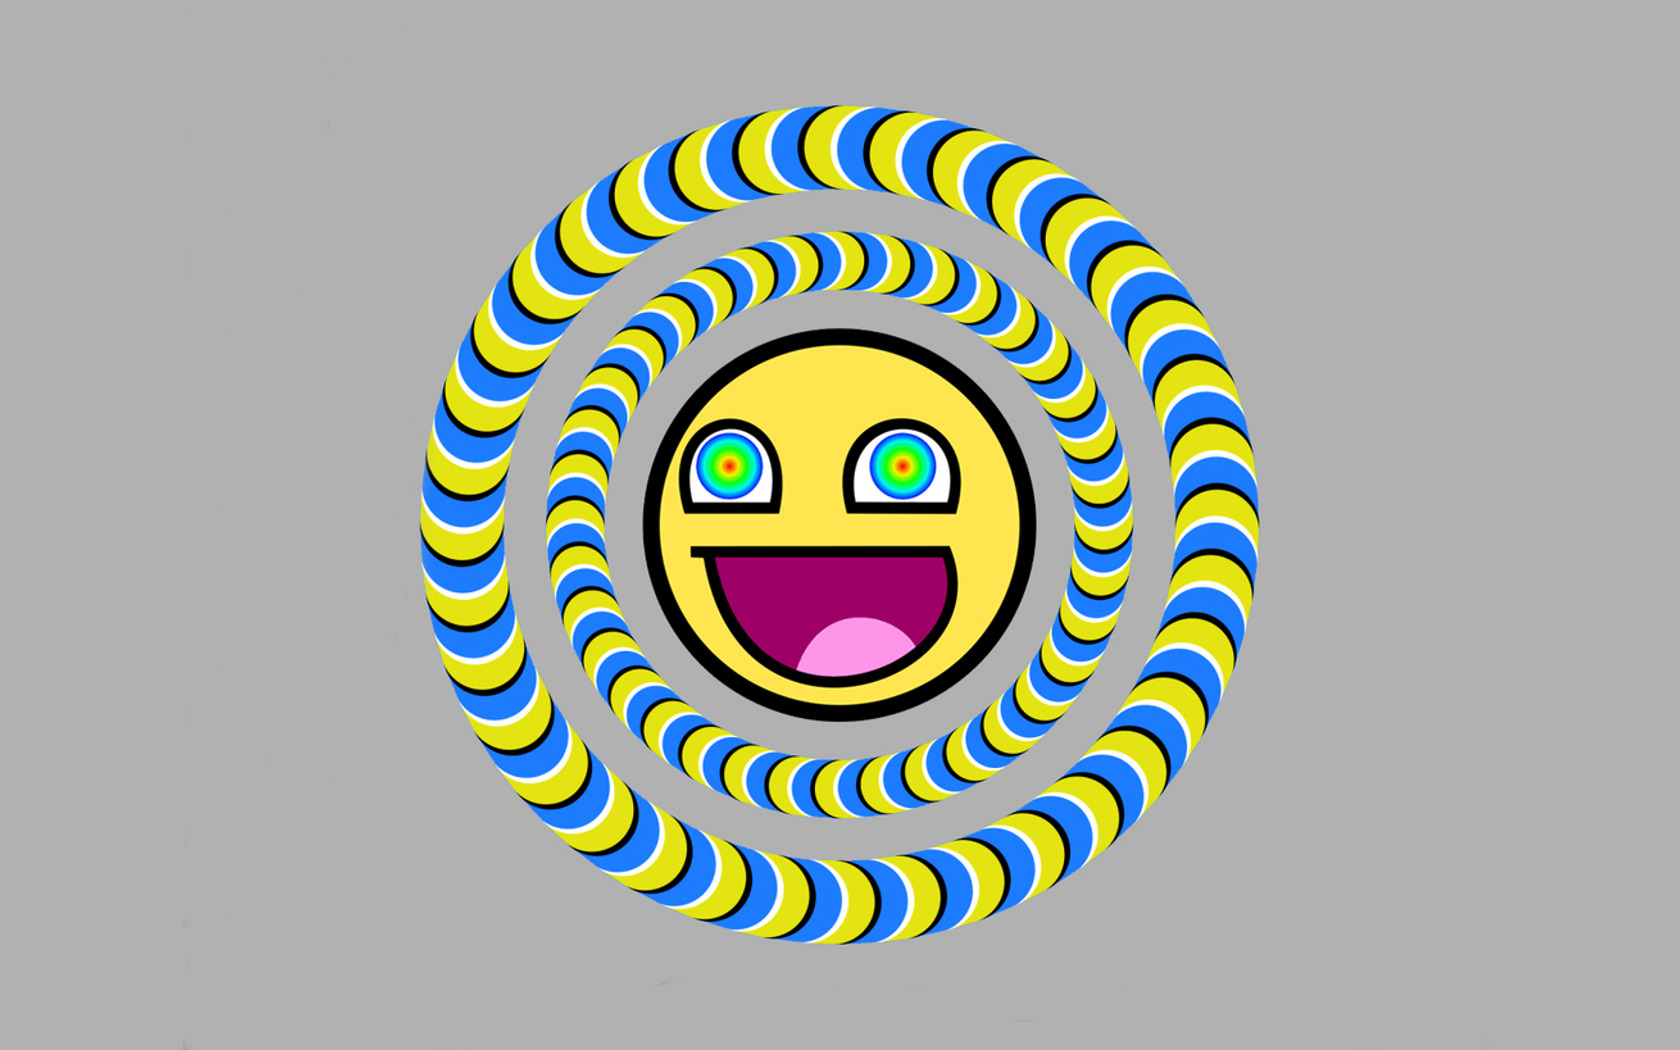 Smiley awesome face voltagebd Image collections